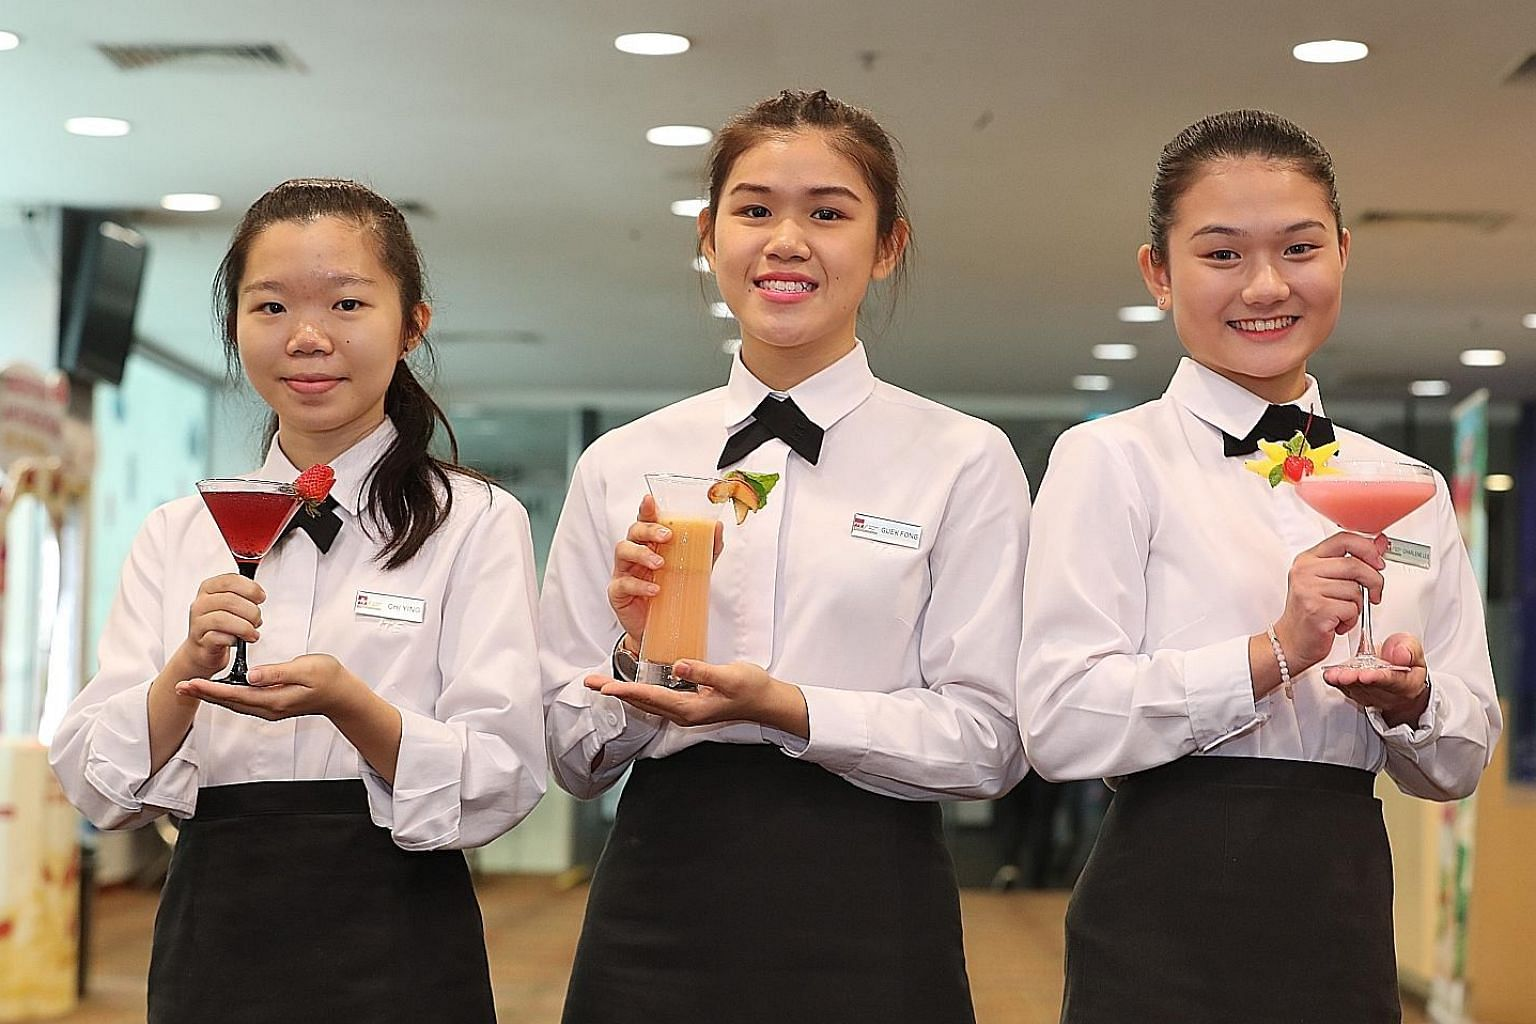 From left: First runner-up Ting Chi Ying with her drink Merry Berry, winner Chow Ying Shun with Call Me Peachy and second runner-up Lee Yan Xuan Charlene with Pink Guavadise. The trio yesterday topped this year's The Greatest Mix - F&N Drinks Creatio